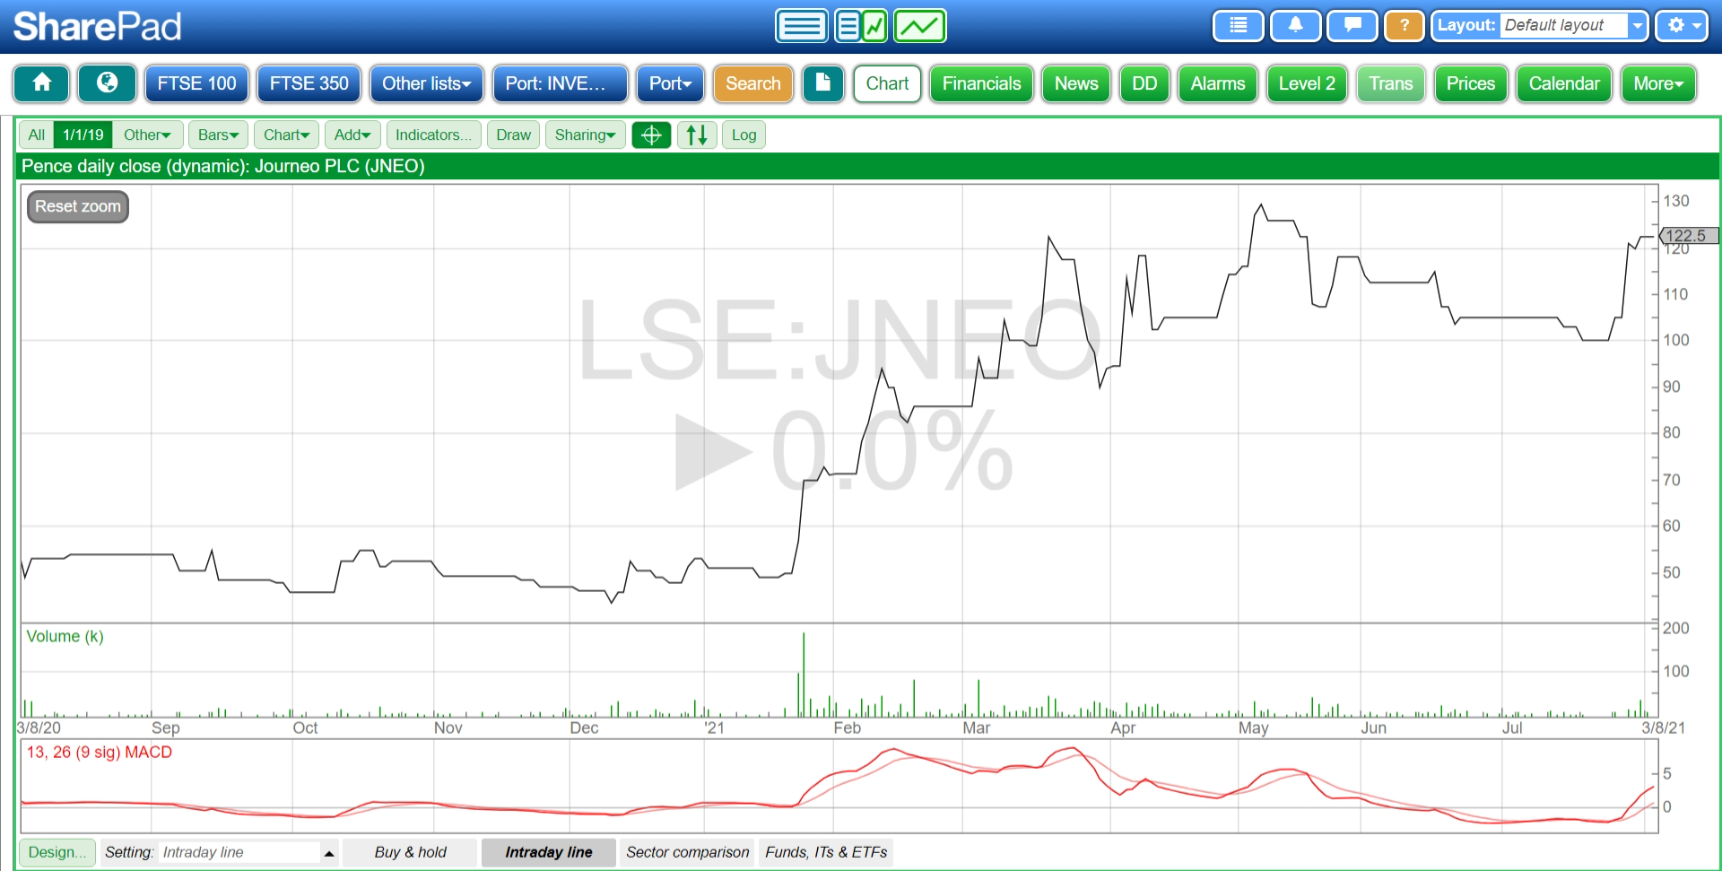 Chart showing Journeo PLC price performance August 2020 to present. Source: SharePad